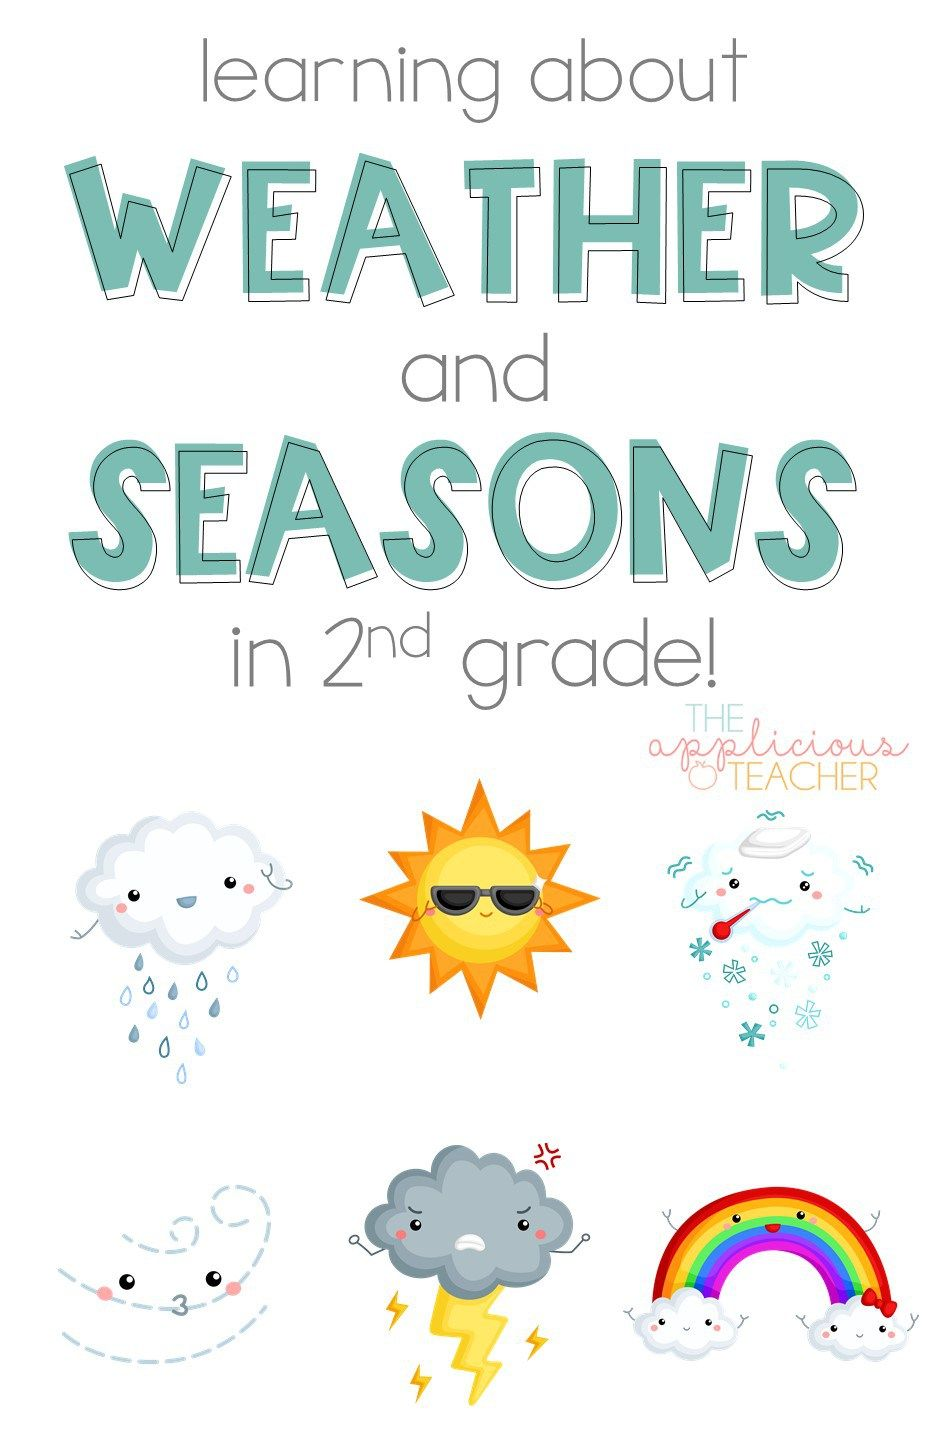 Learning About the Weather and Seasons in 2nd Grade   2nd grade activities [ 1444 x 950 Pixel ]